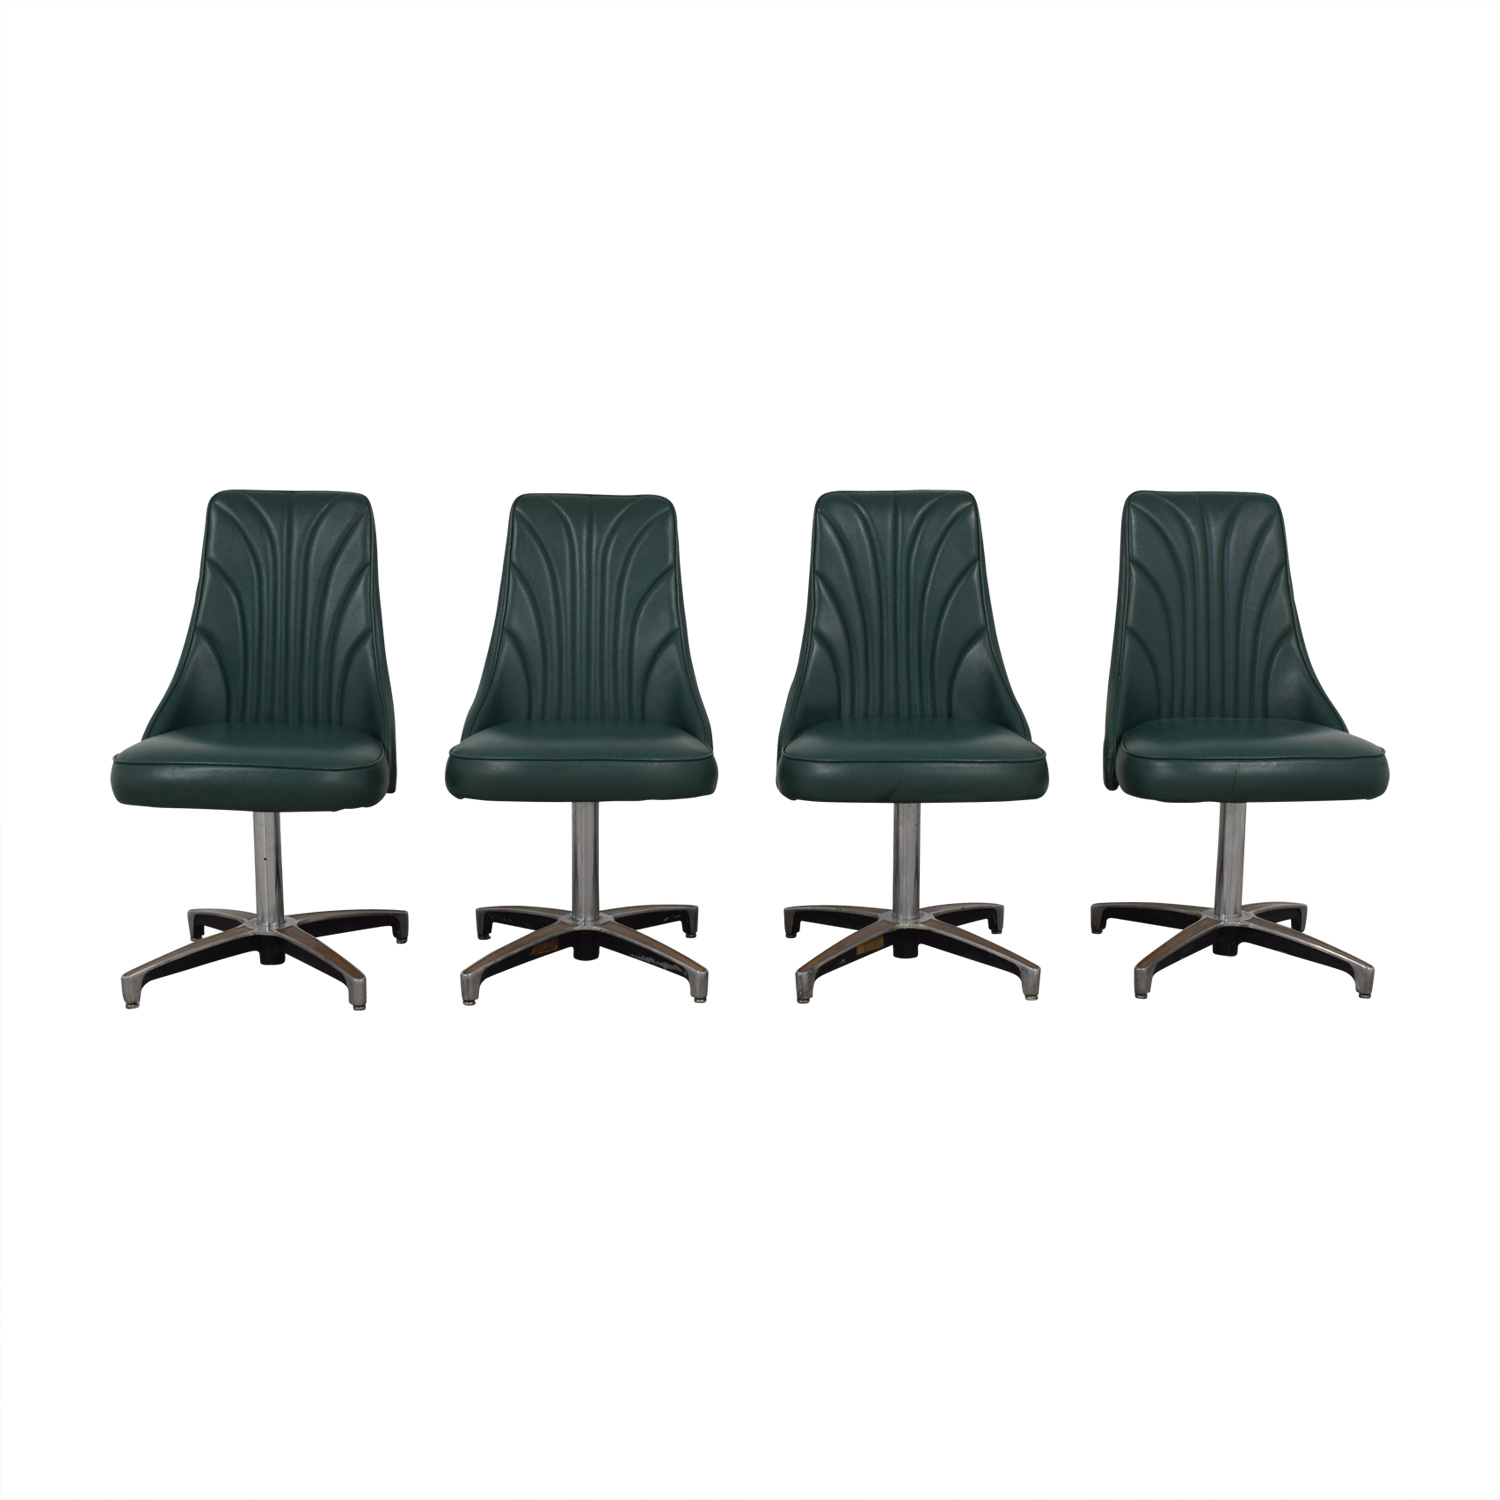 shop  Vintage Teal Green Dining Chairs online